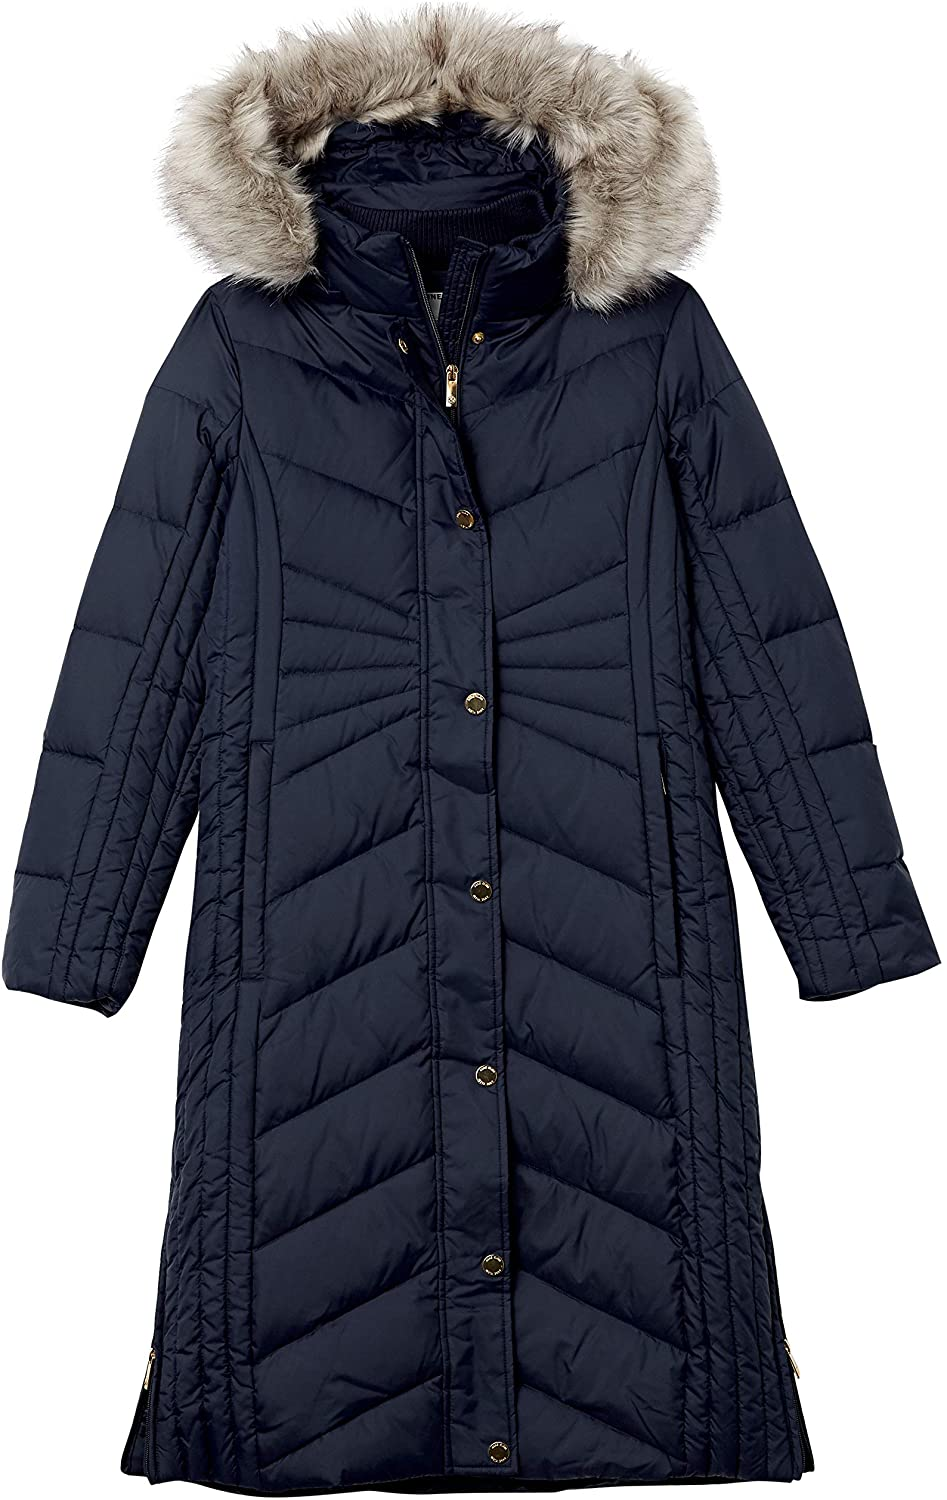 Anne Klein Women's Long Down Coat with Faux Fur Trim